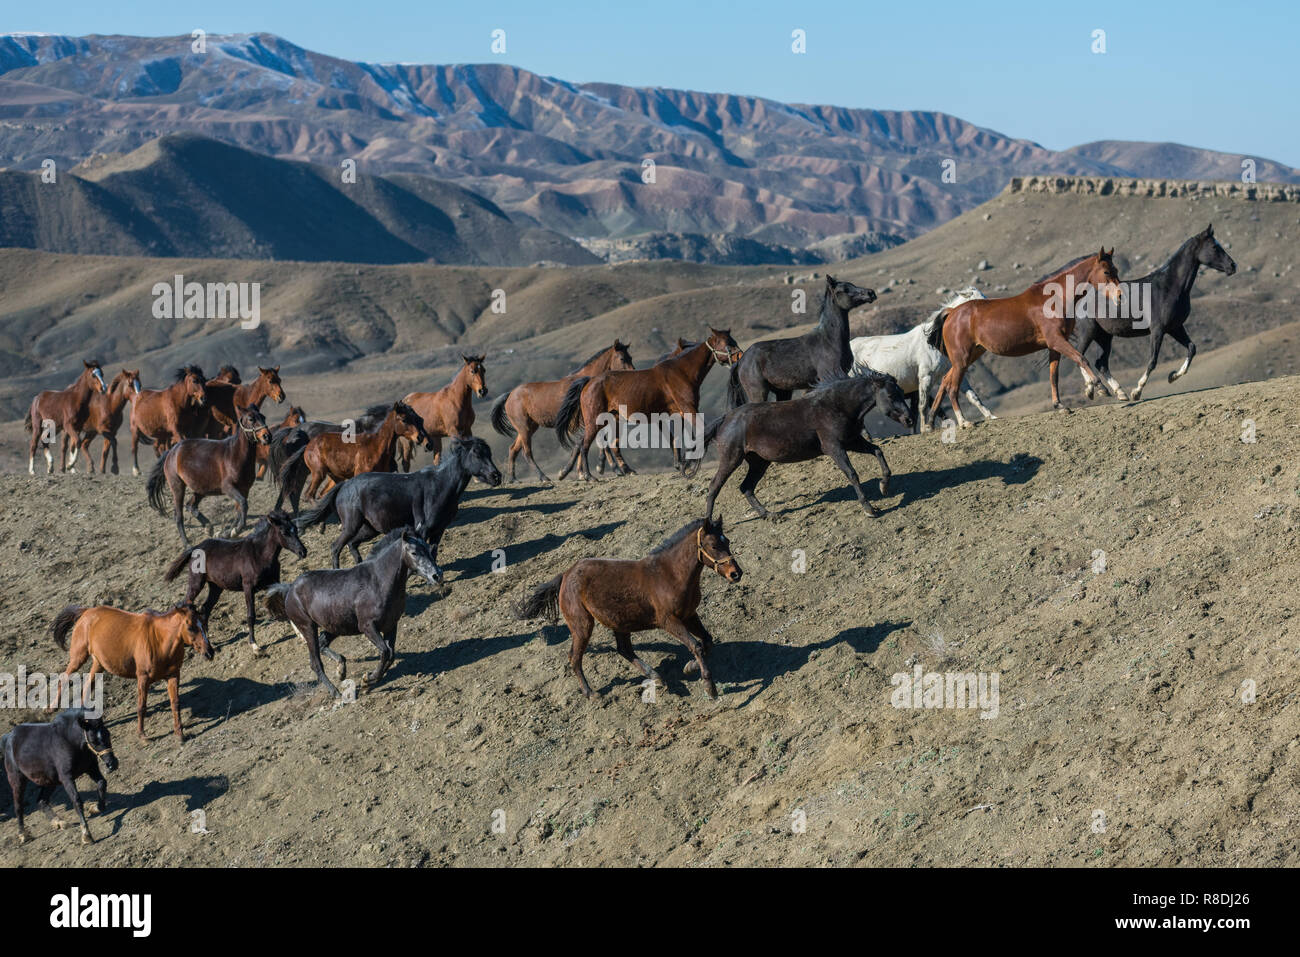 A group of genuine Turkmen horses at Raz and Jargalan region. Iran, Northern Khorasan Province. - Stock Image